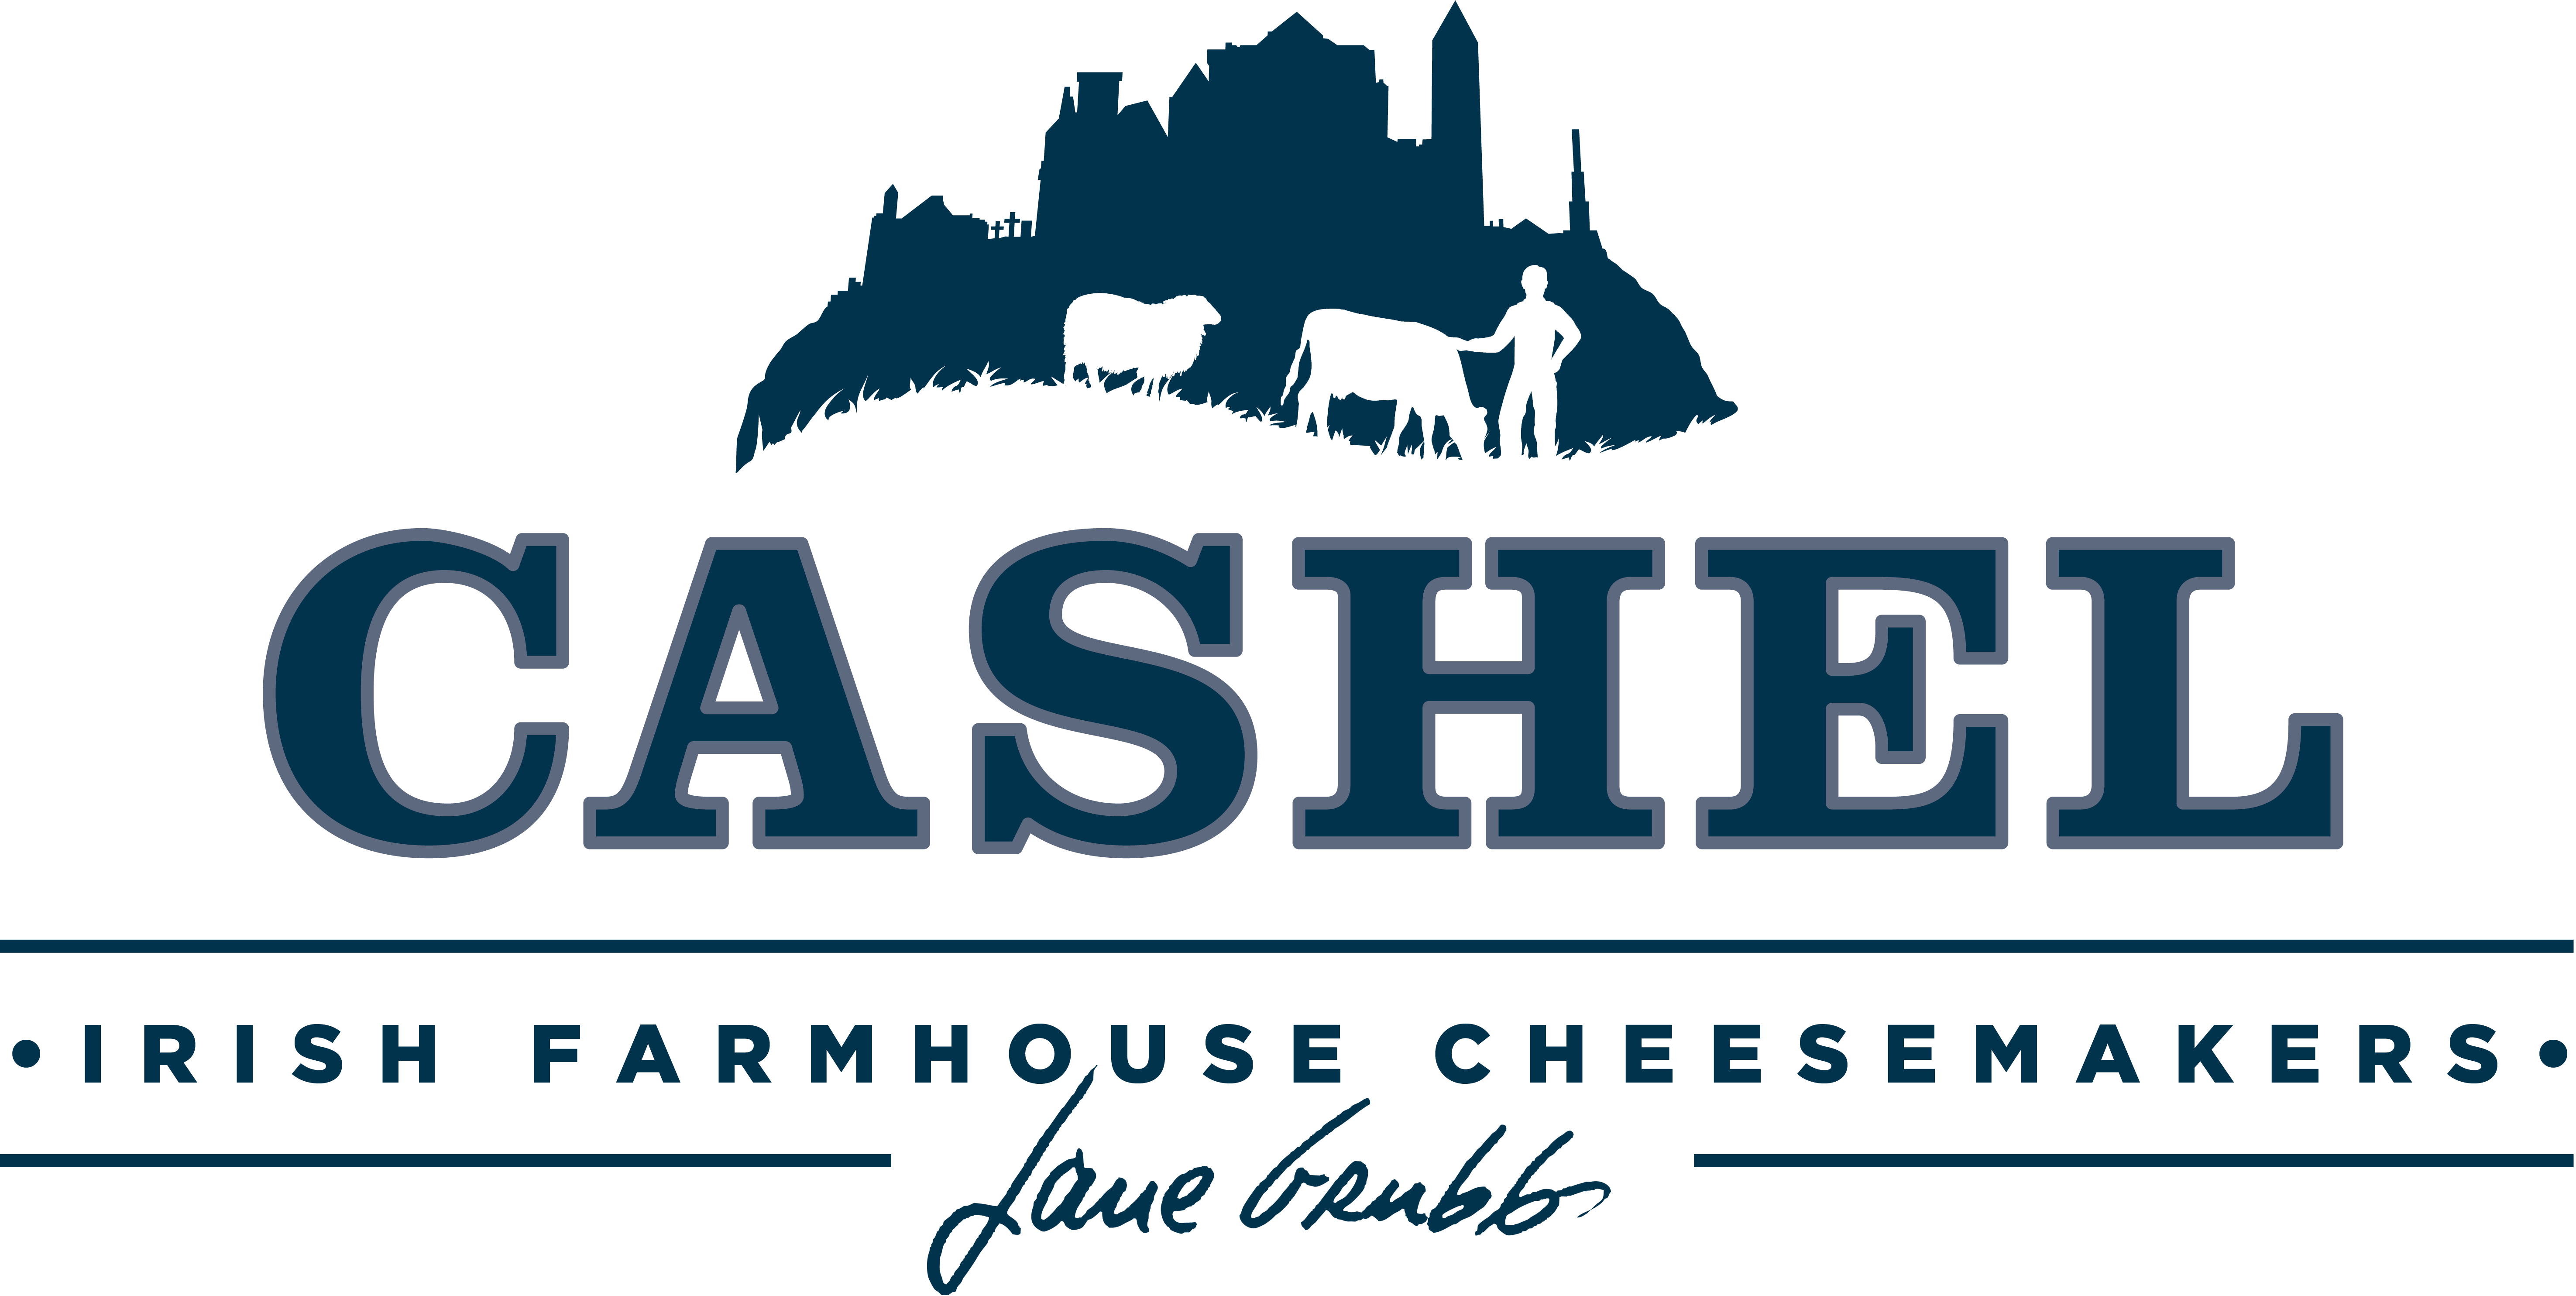 Cashel Farmhouse Cheesemakers logotype